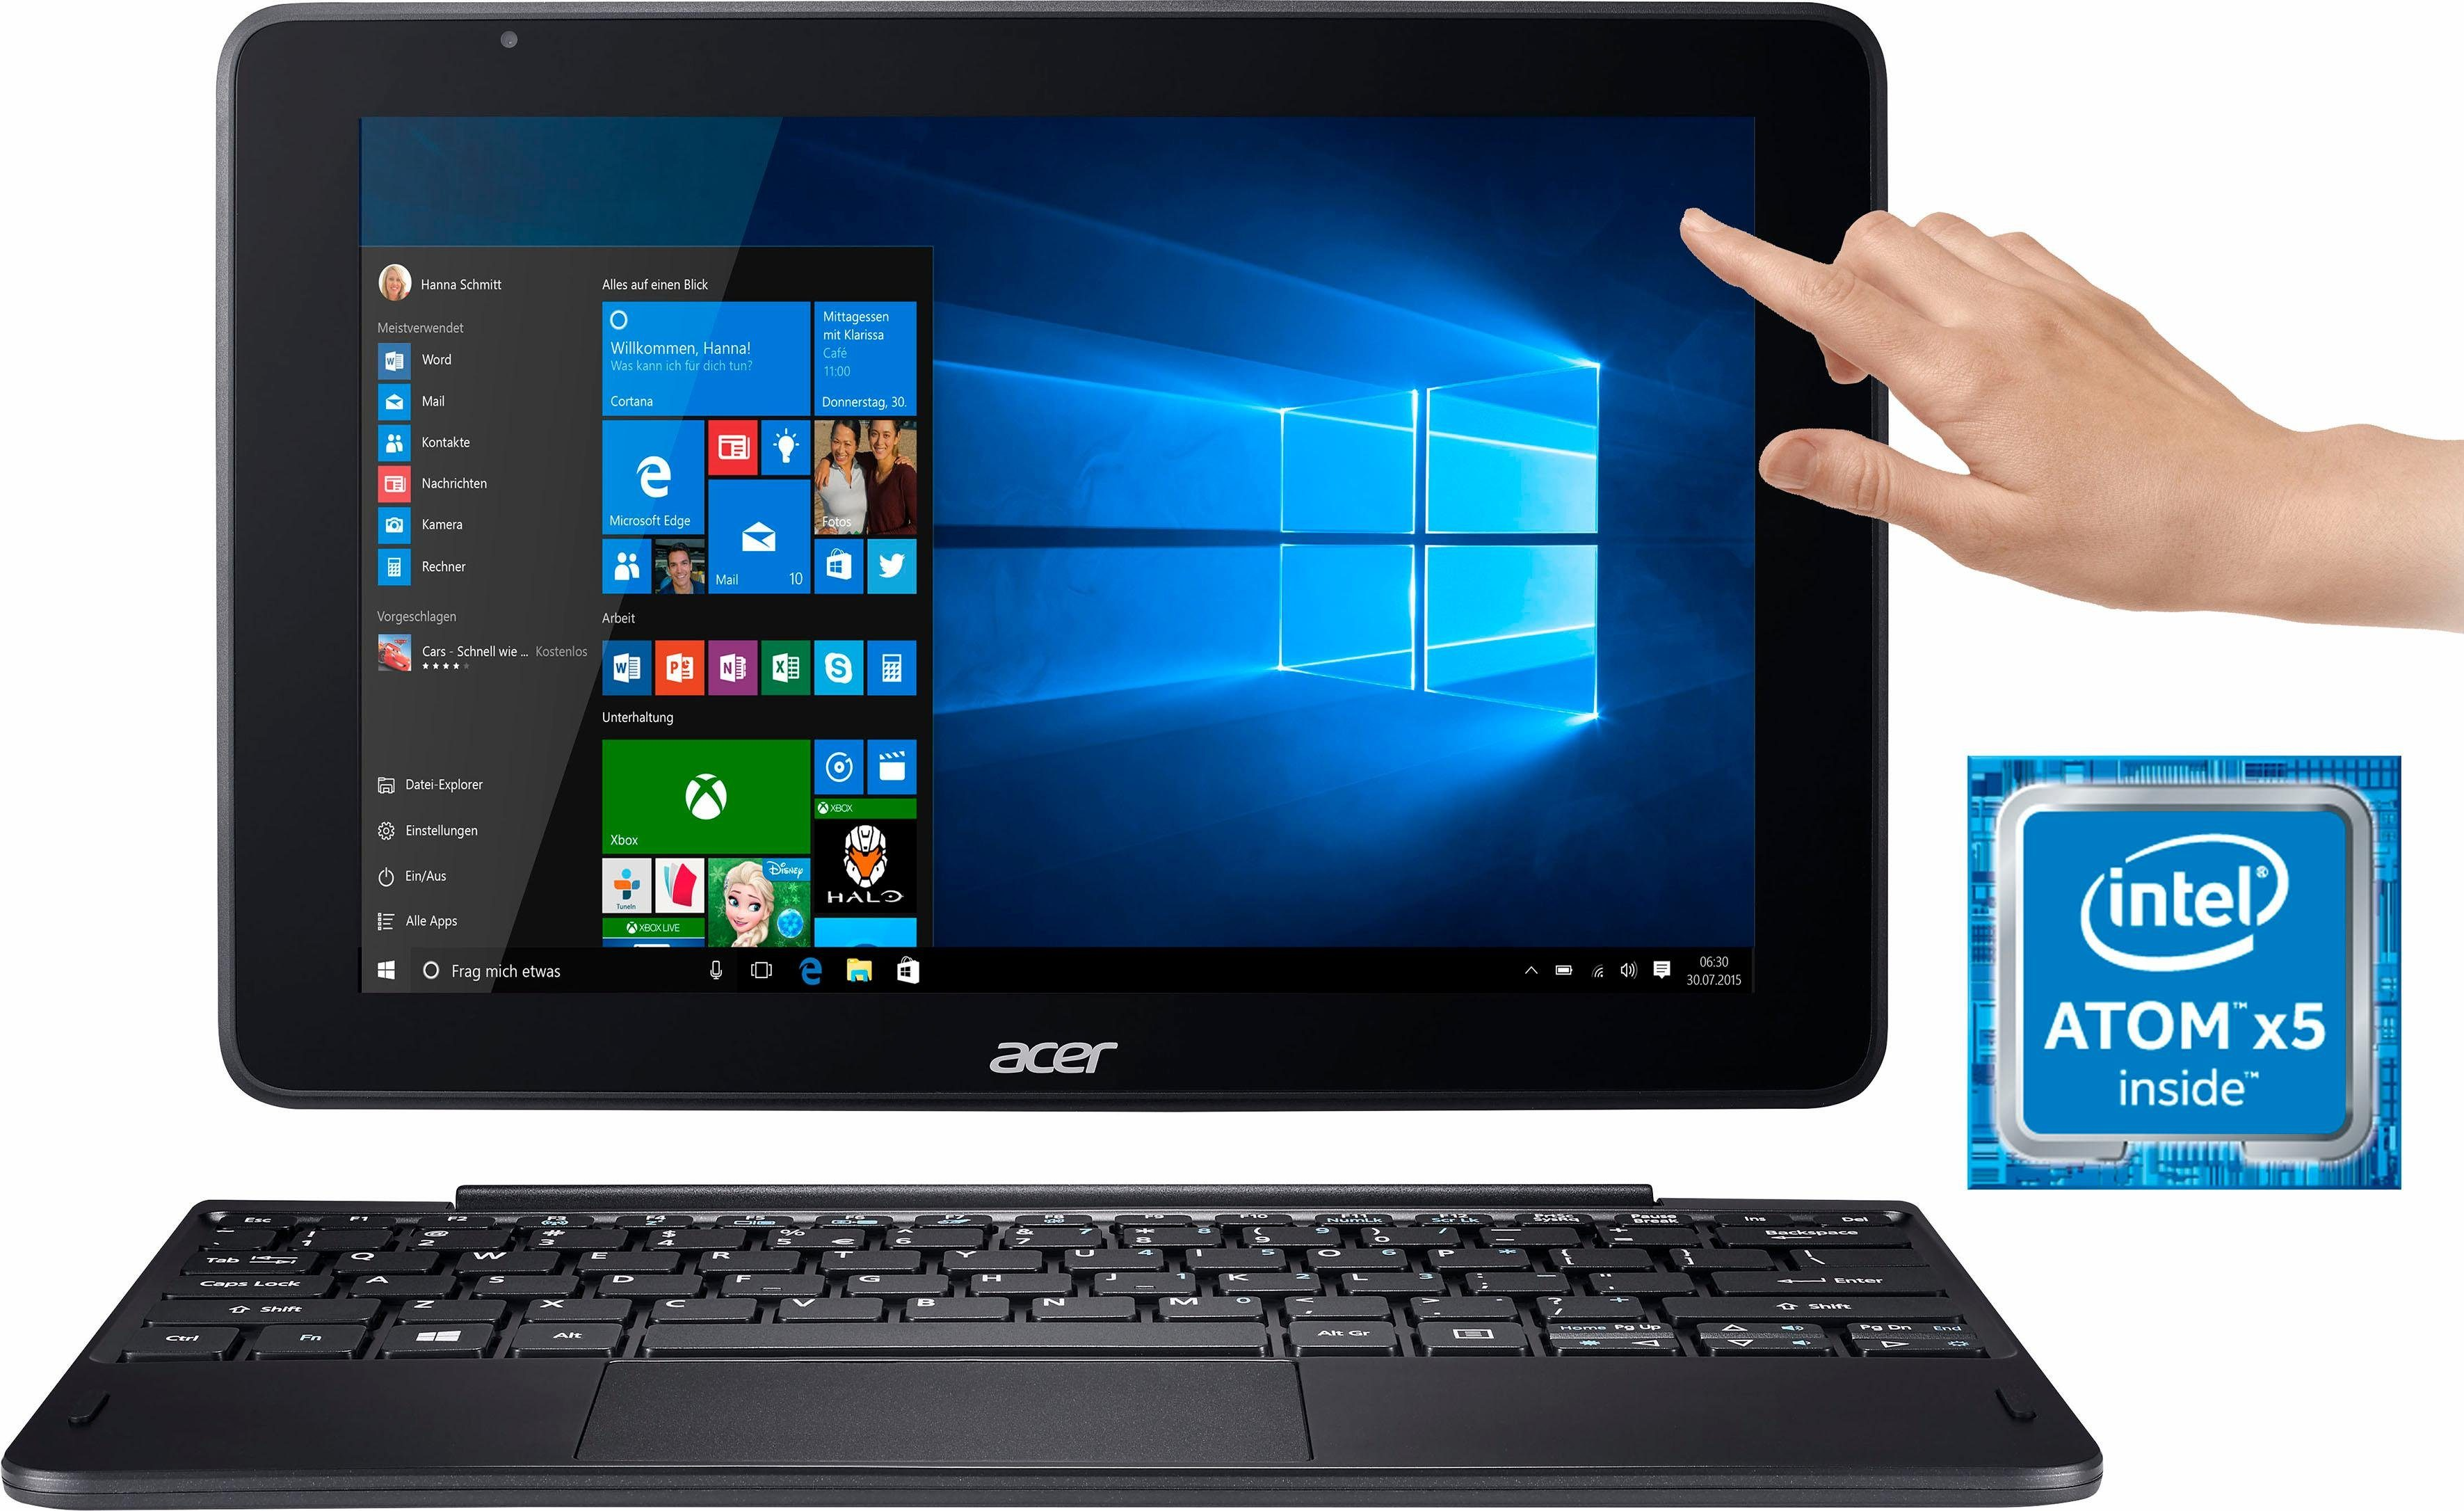 Acer One 10 (S1003-14LN) Notebook, Intel® Atom™, 25